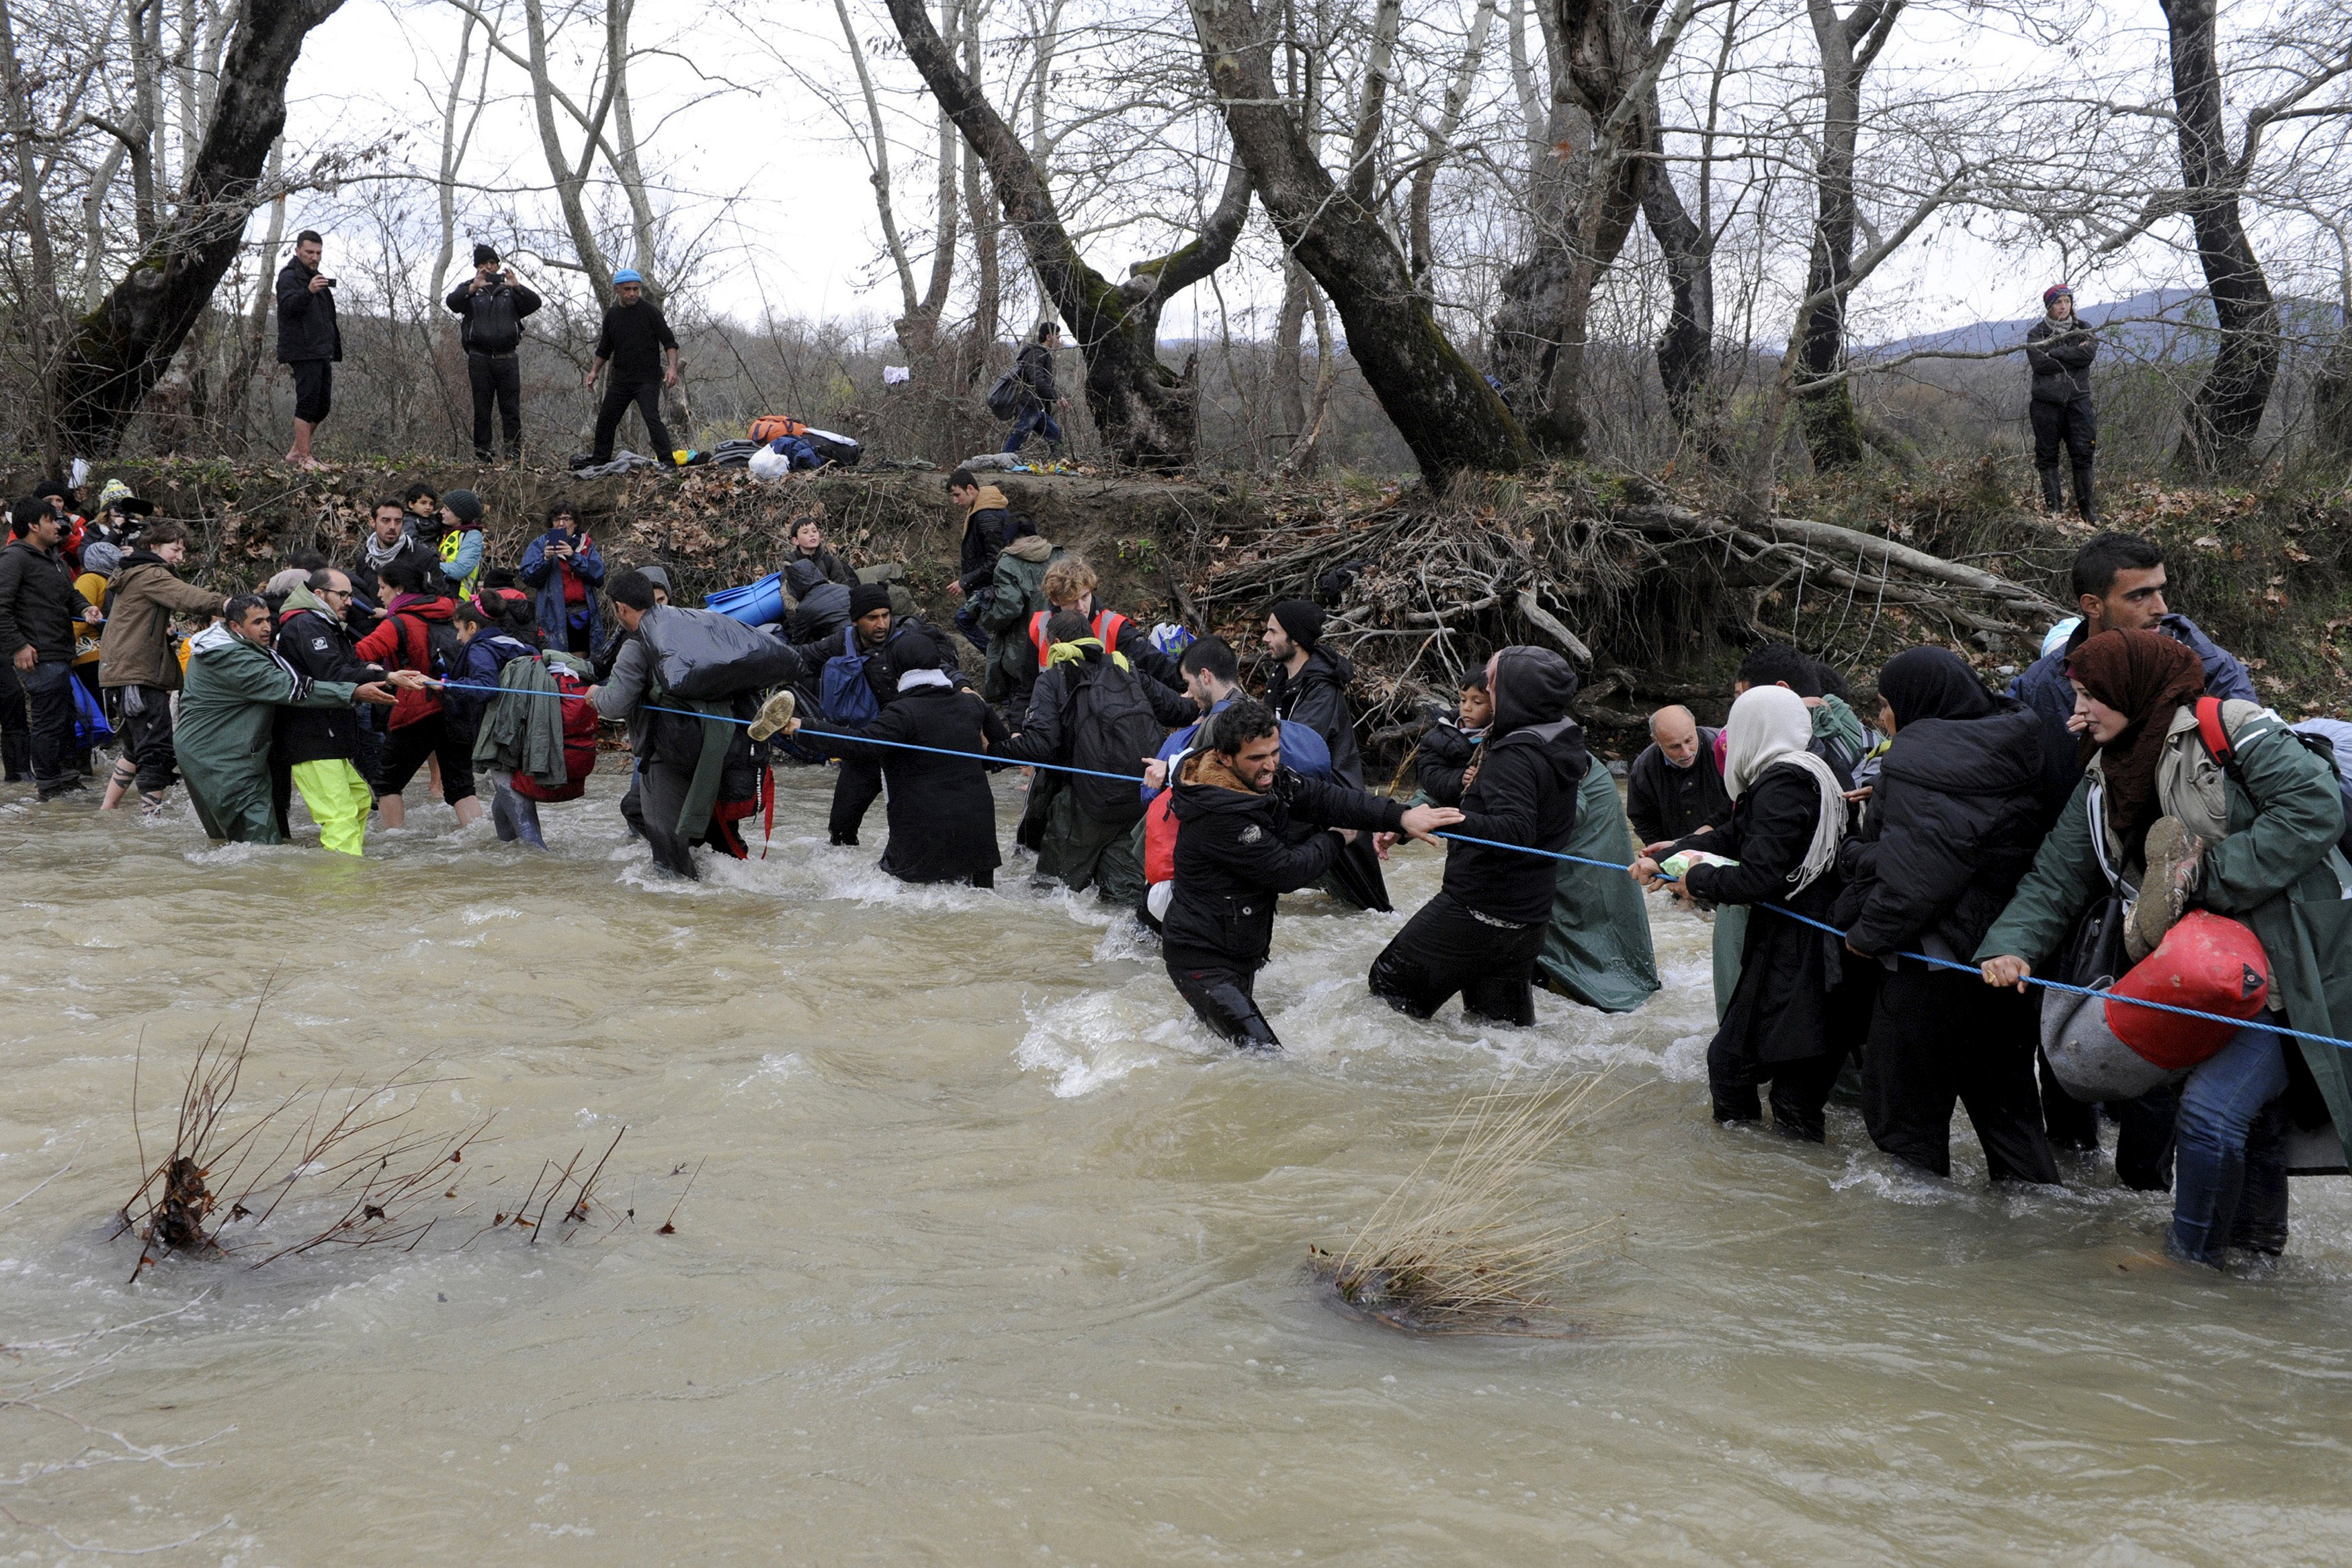 Migrants wade across a river near the Greek-Macedonian border, west of the the village of Idomeni, Greece, March 14, 2016. REUTERS/Alexandros Avramidis